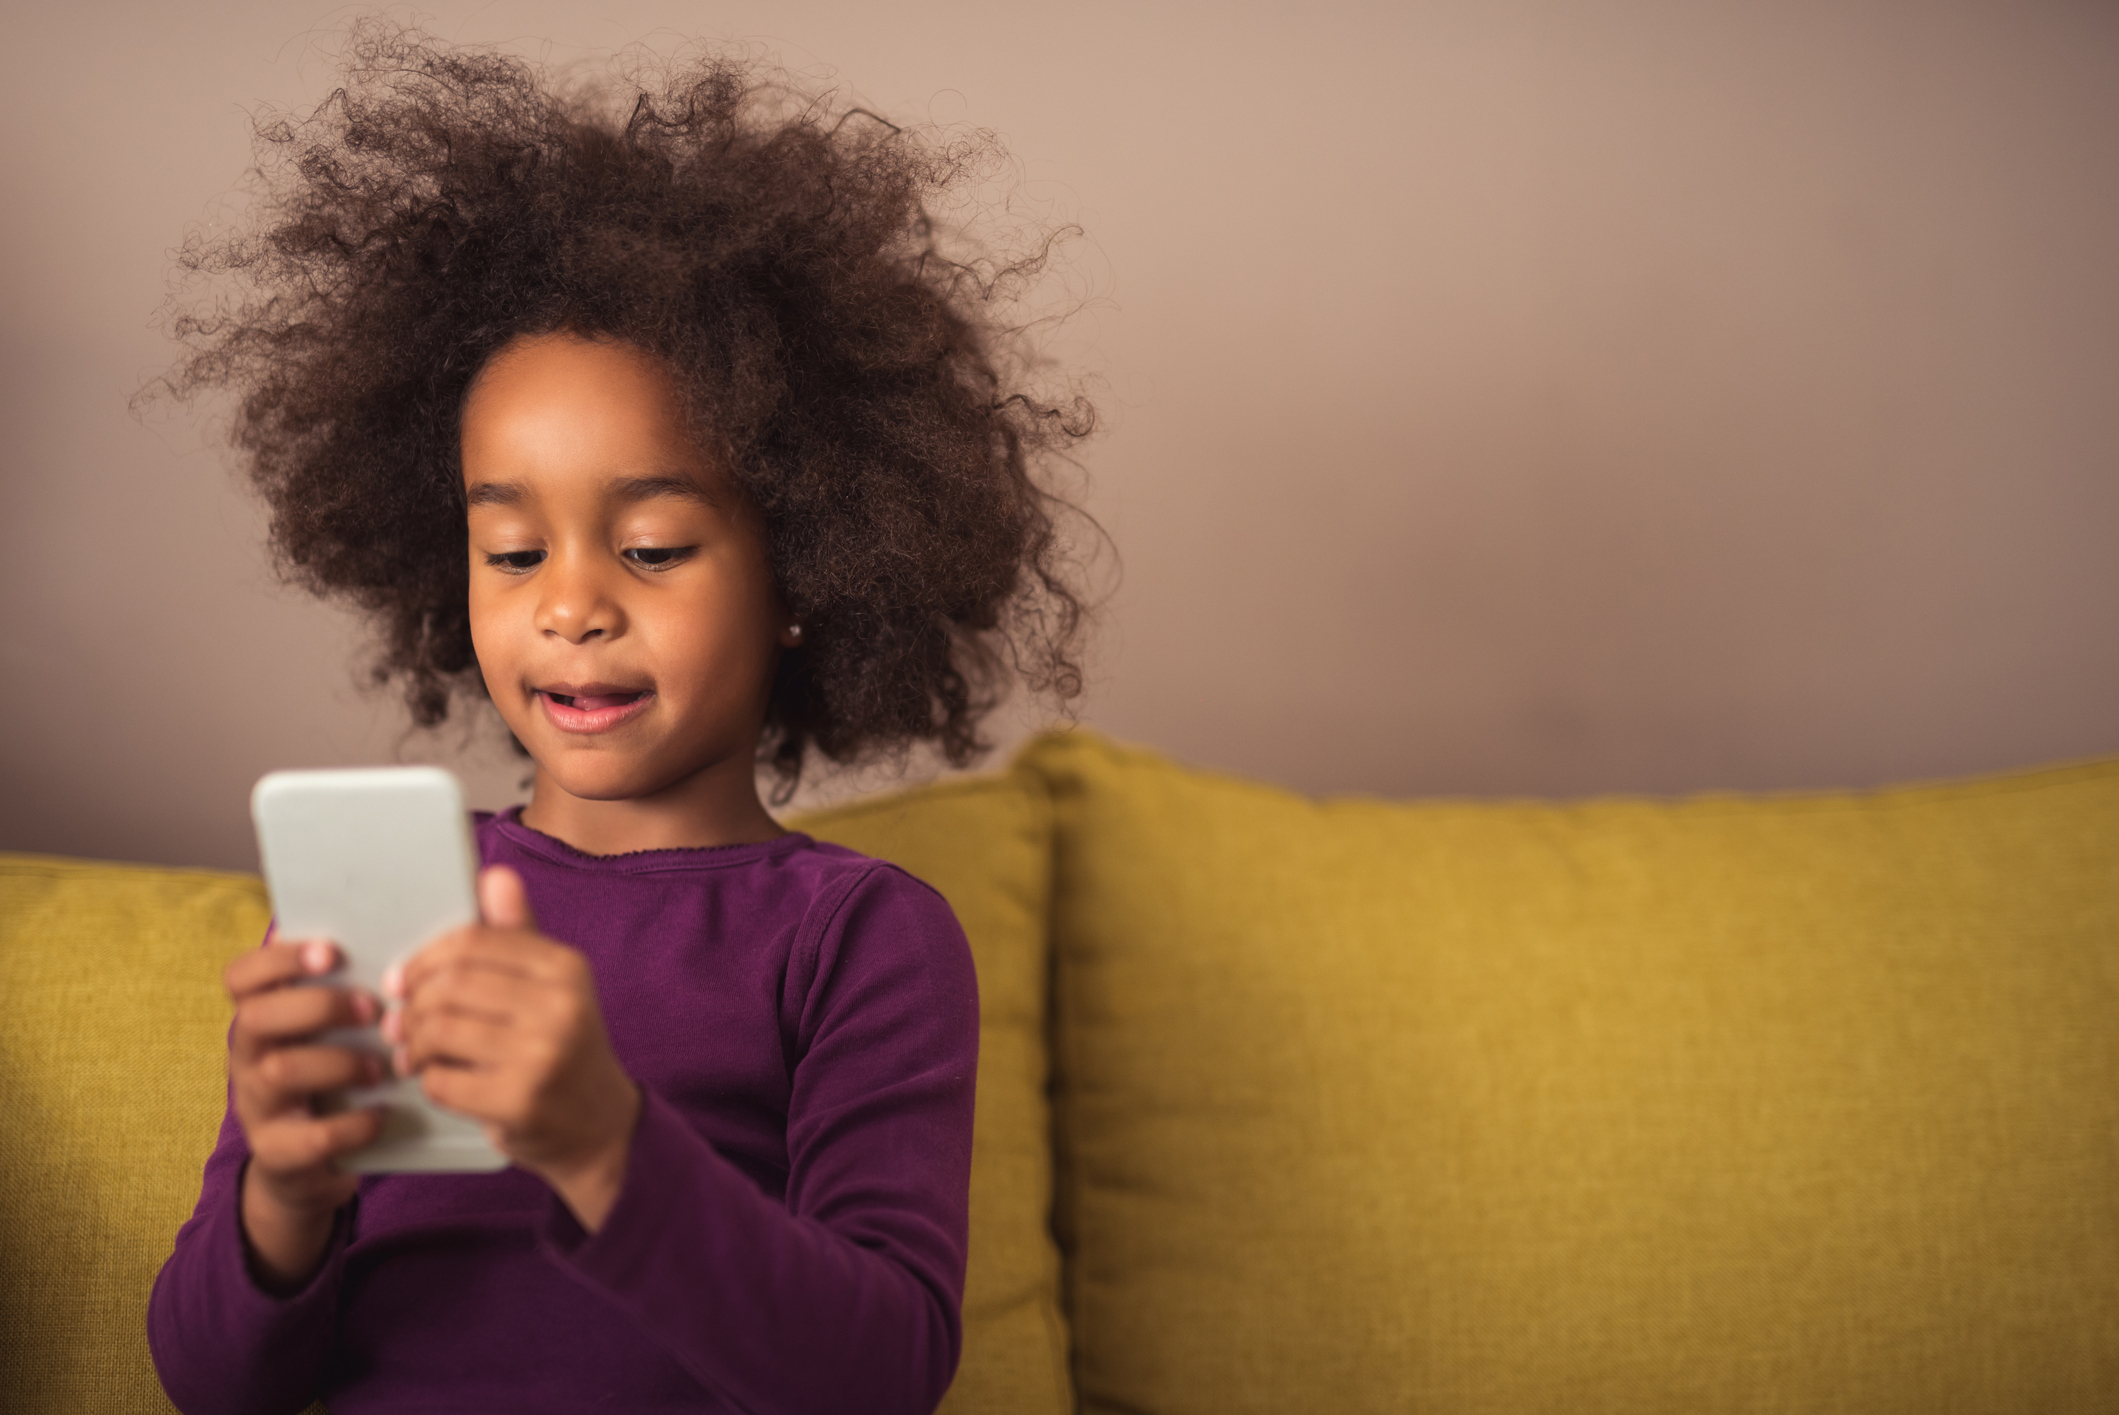 A child sitting on a sofa using a mobile phone